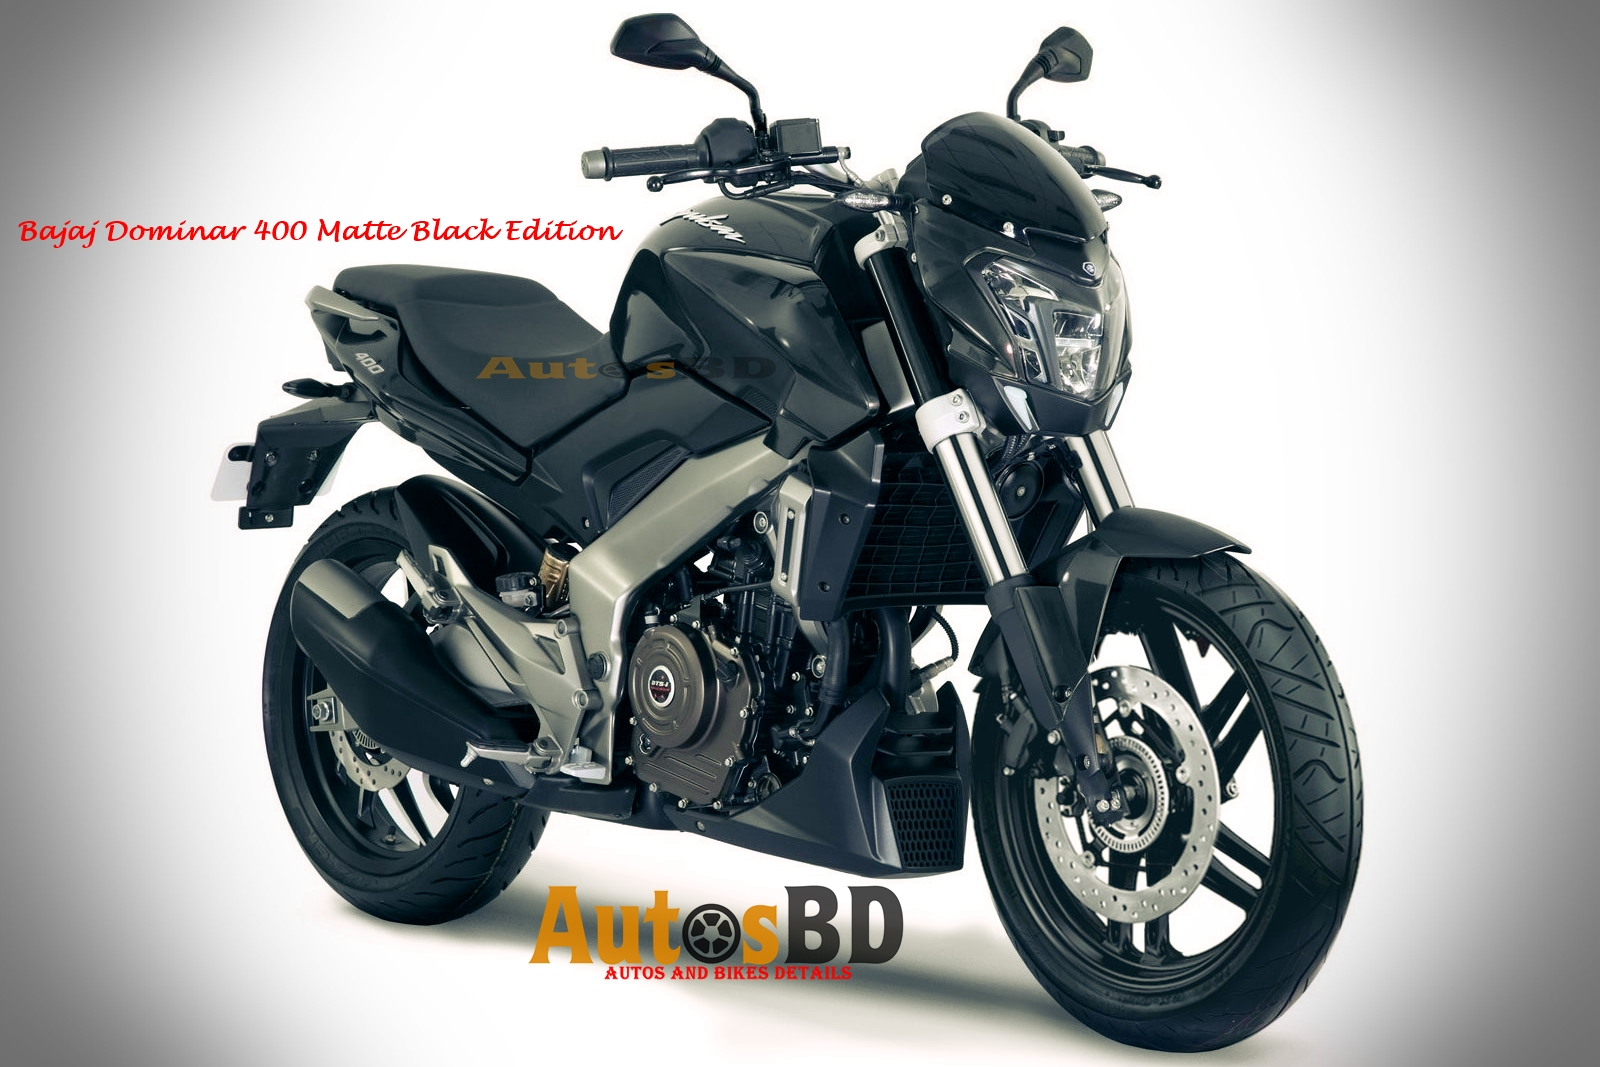 Bajaj Dominar 400 Matte Black Edition Motorcycle Specification